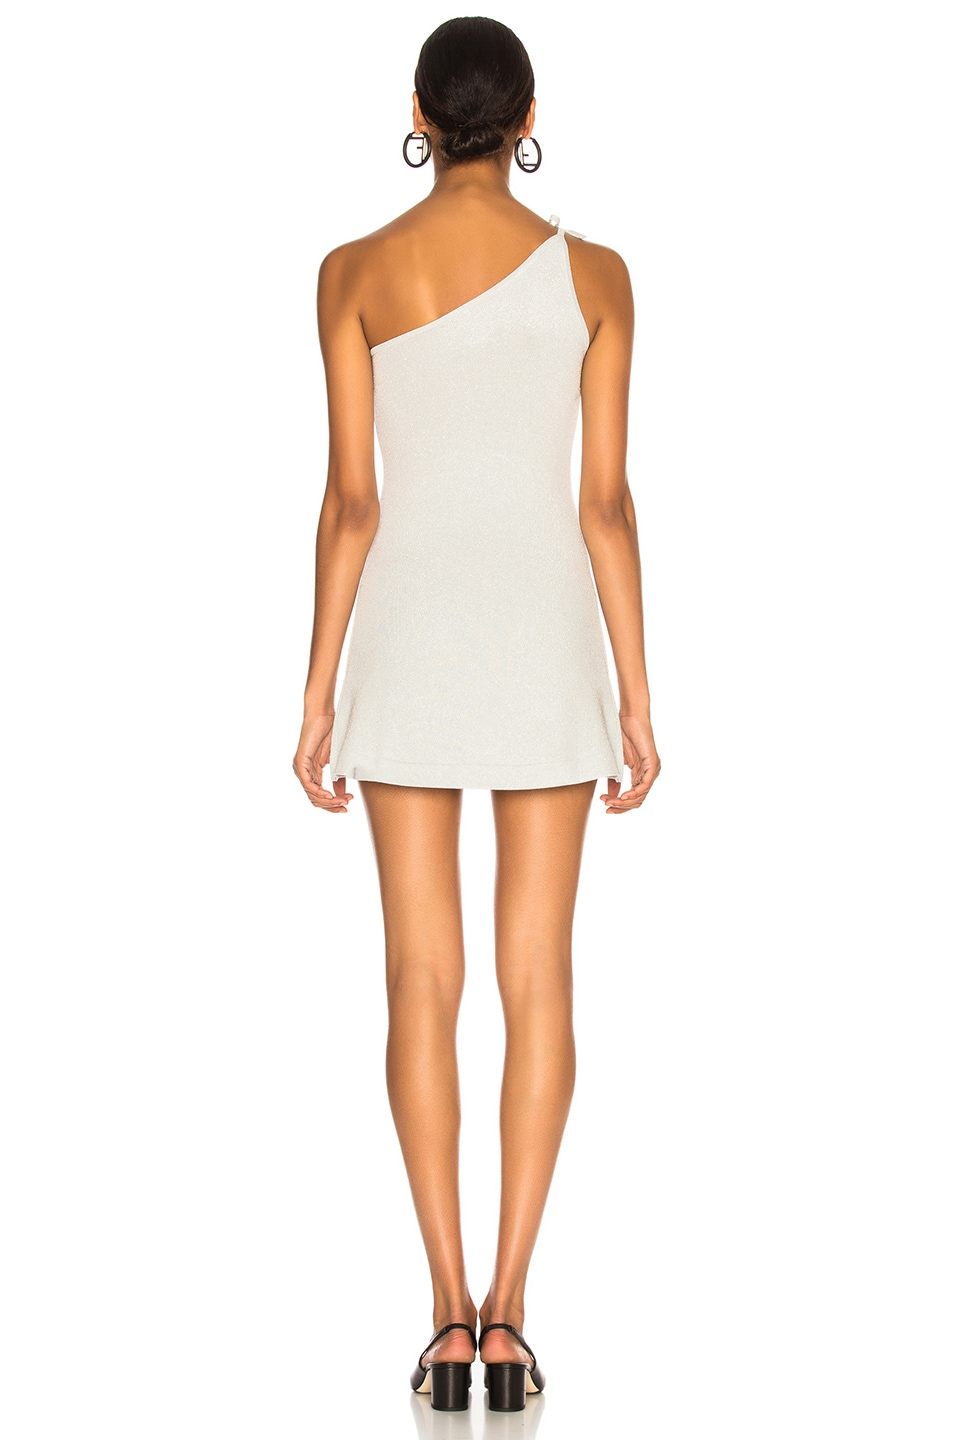 Image 4 of JoosTricot Asymmetric Dress in Silver White Lurex